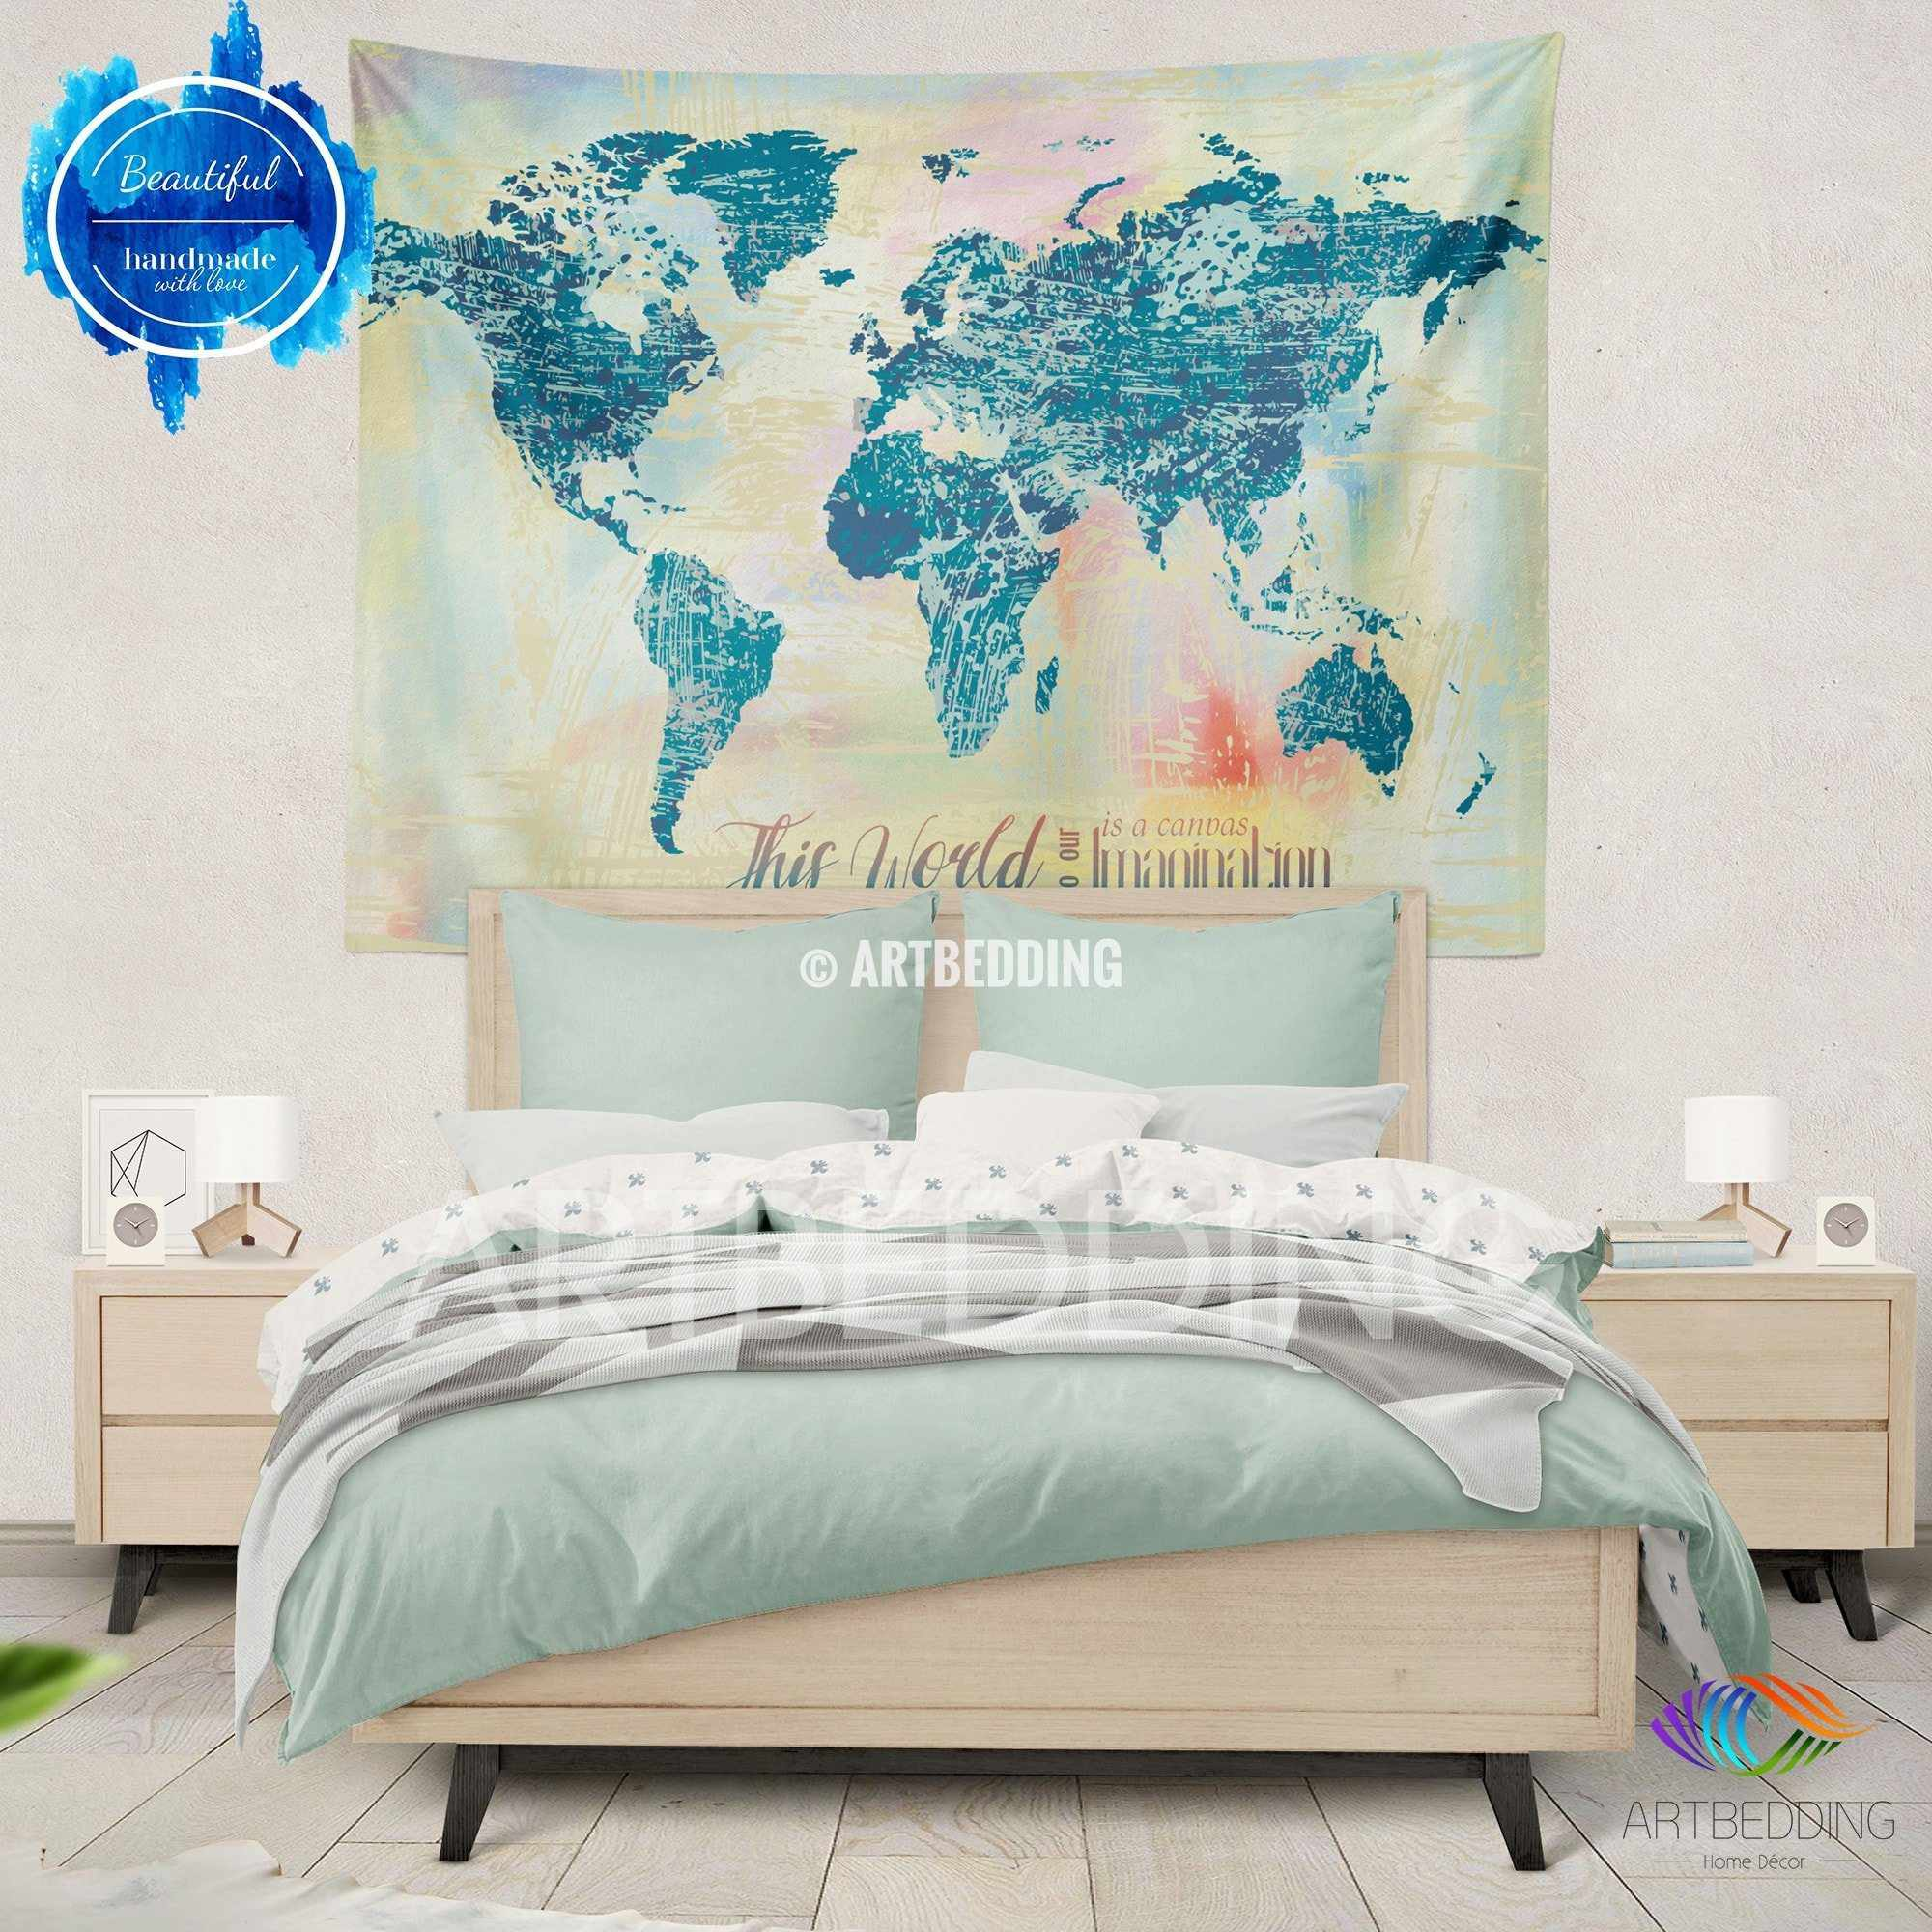 watercolor world map wall tapestry grunge world map wall tapestry  - watercolor world map wall tapestry grunge world map wall tapestry hippie tapestrywall hanging modern watercolor map tapestries watercolor grunge